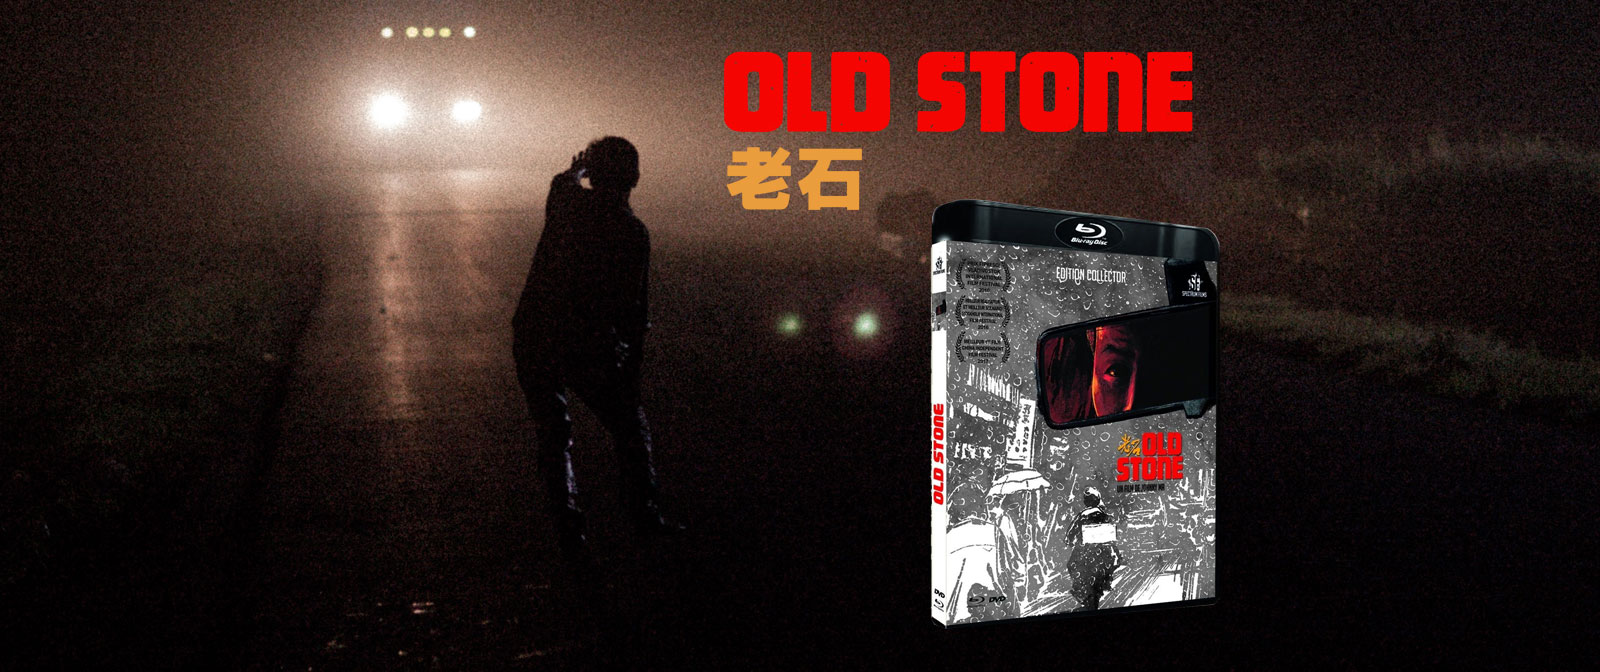 Sortie en dvd / Blu-ray de « Old stone » de Johnny Ma